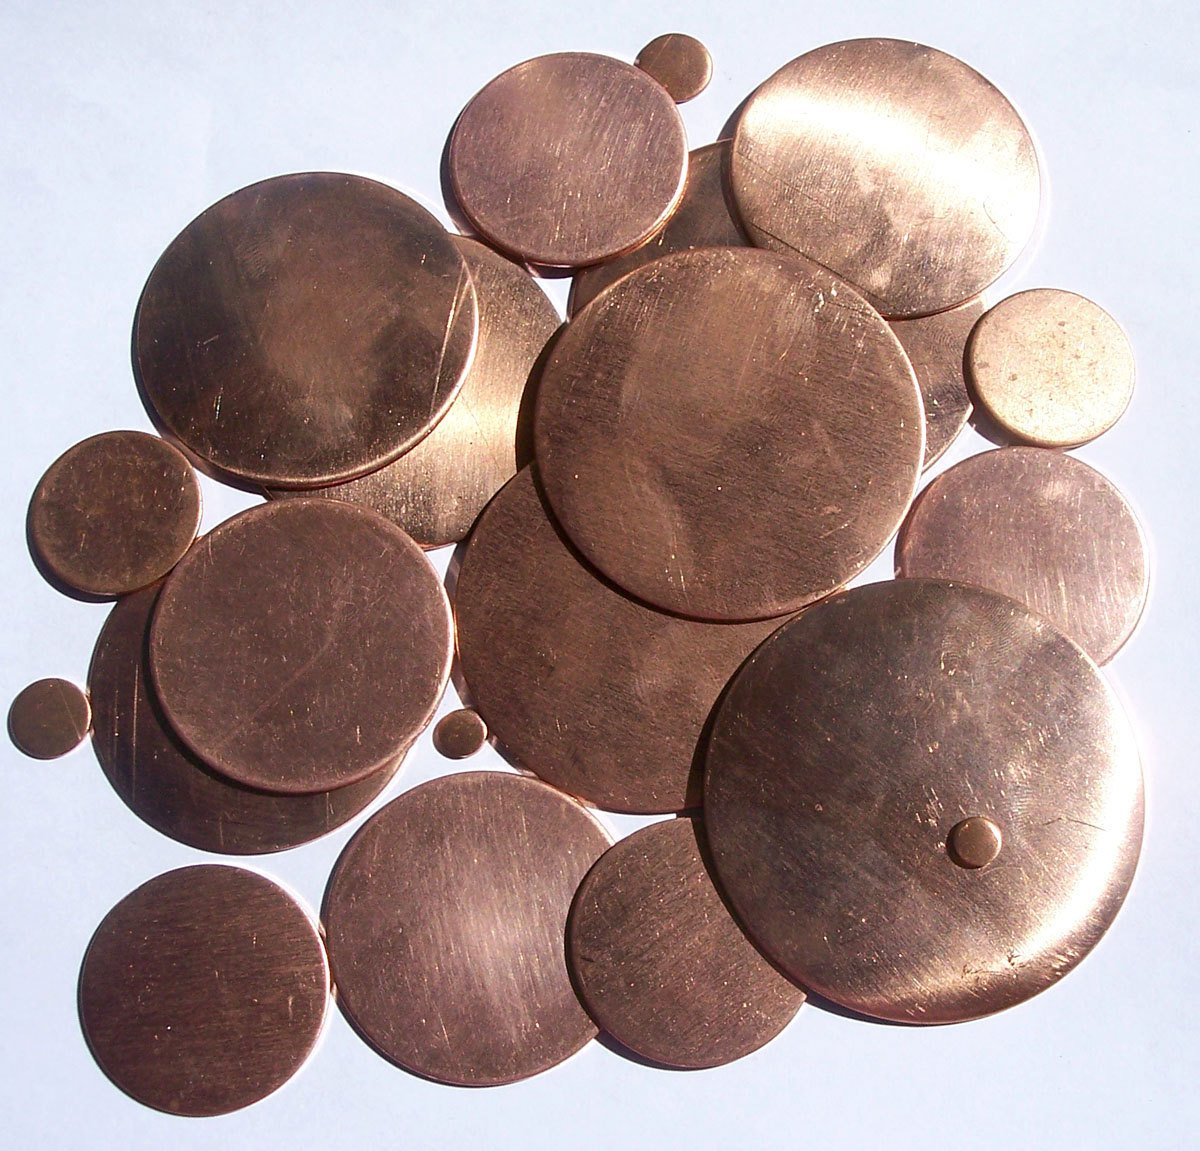 Copper 25mm Disc Blank 20G Enameling Soldering Stamping Blanks - Jewelry Supplies - 6 Pieces